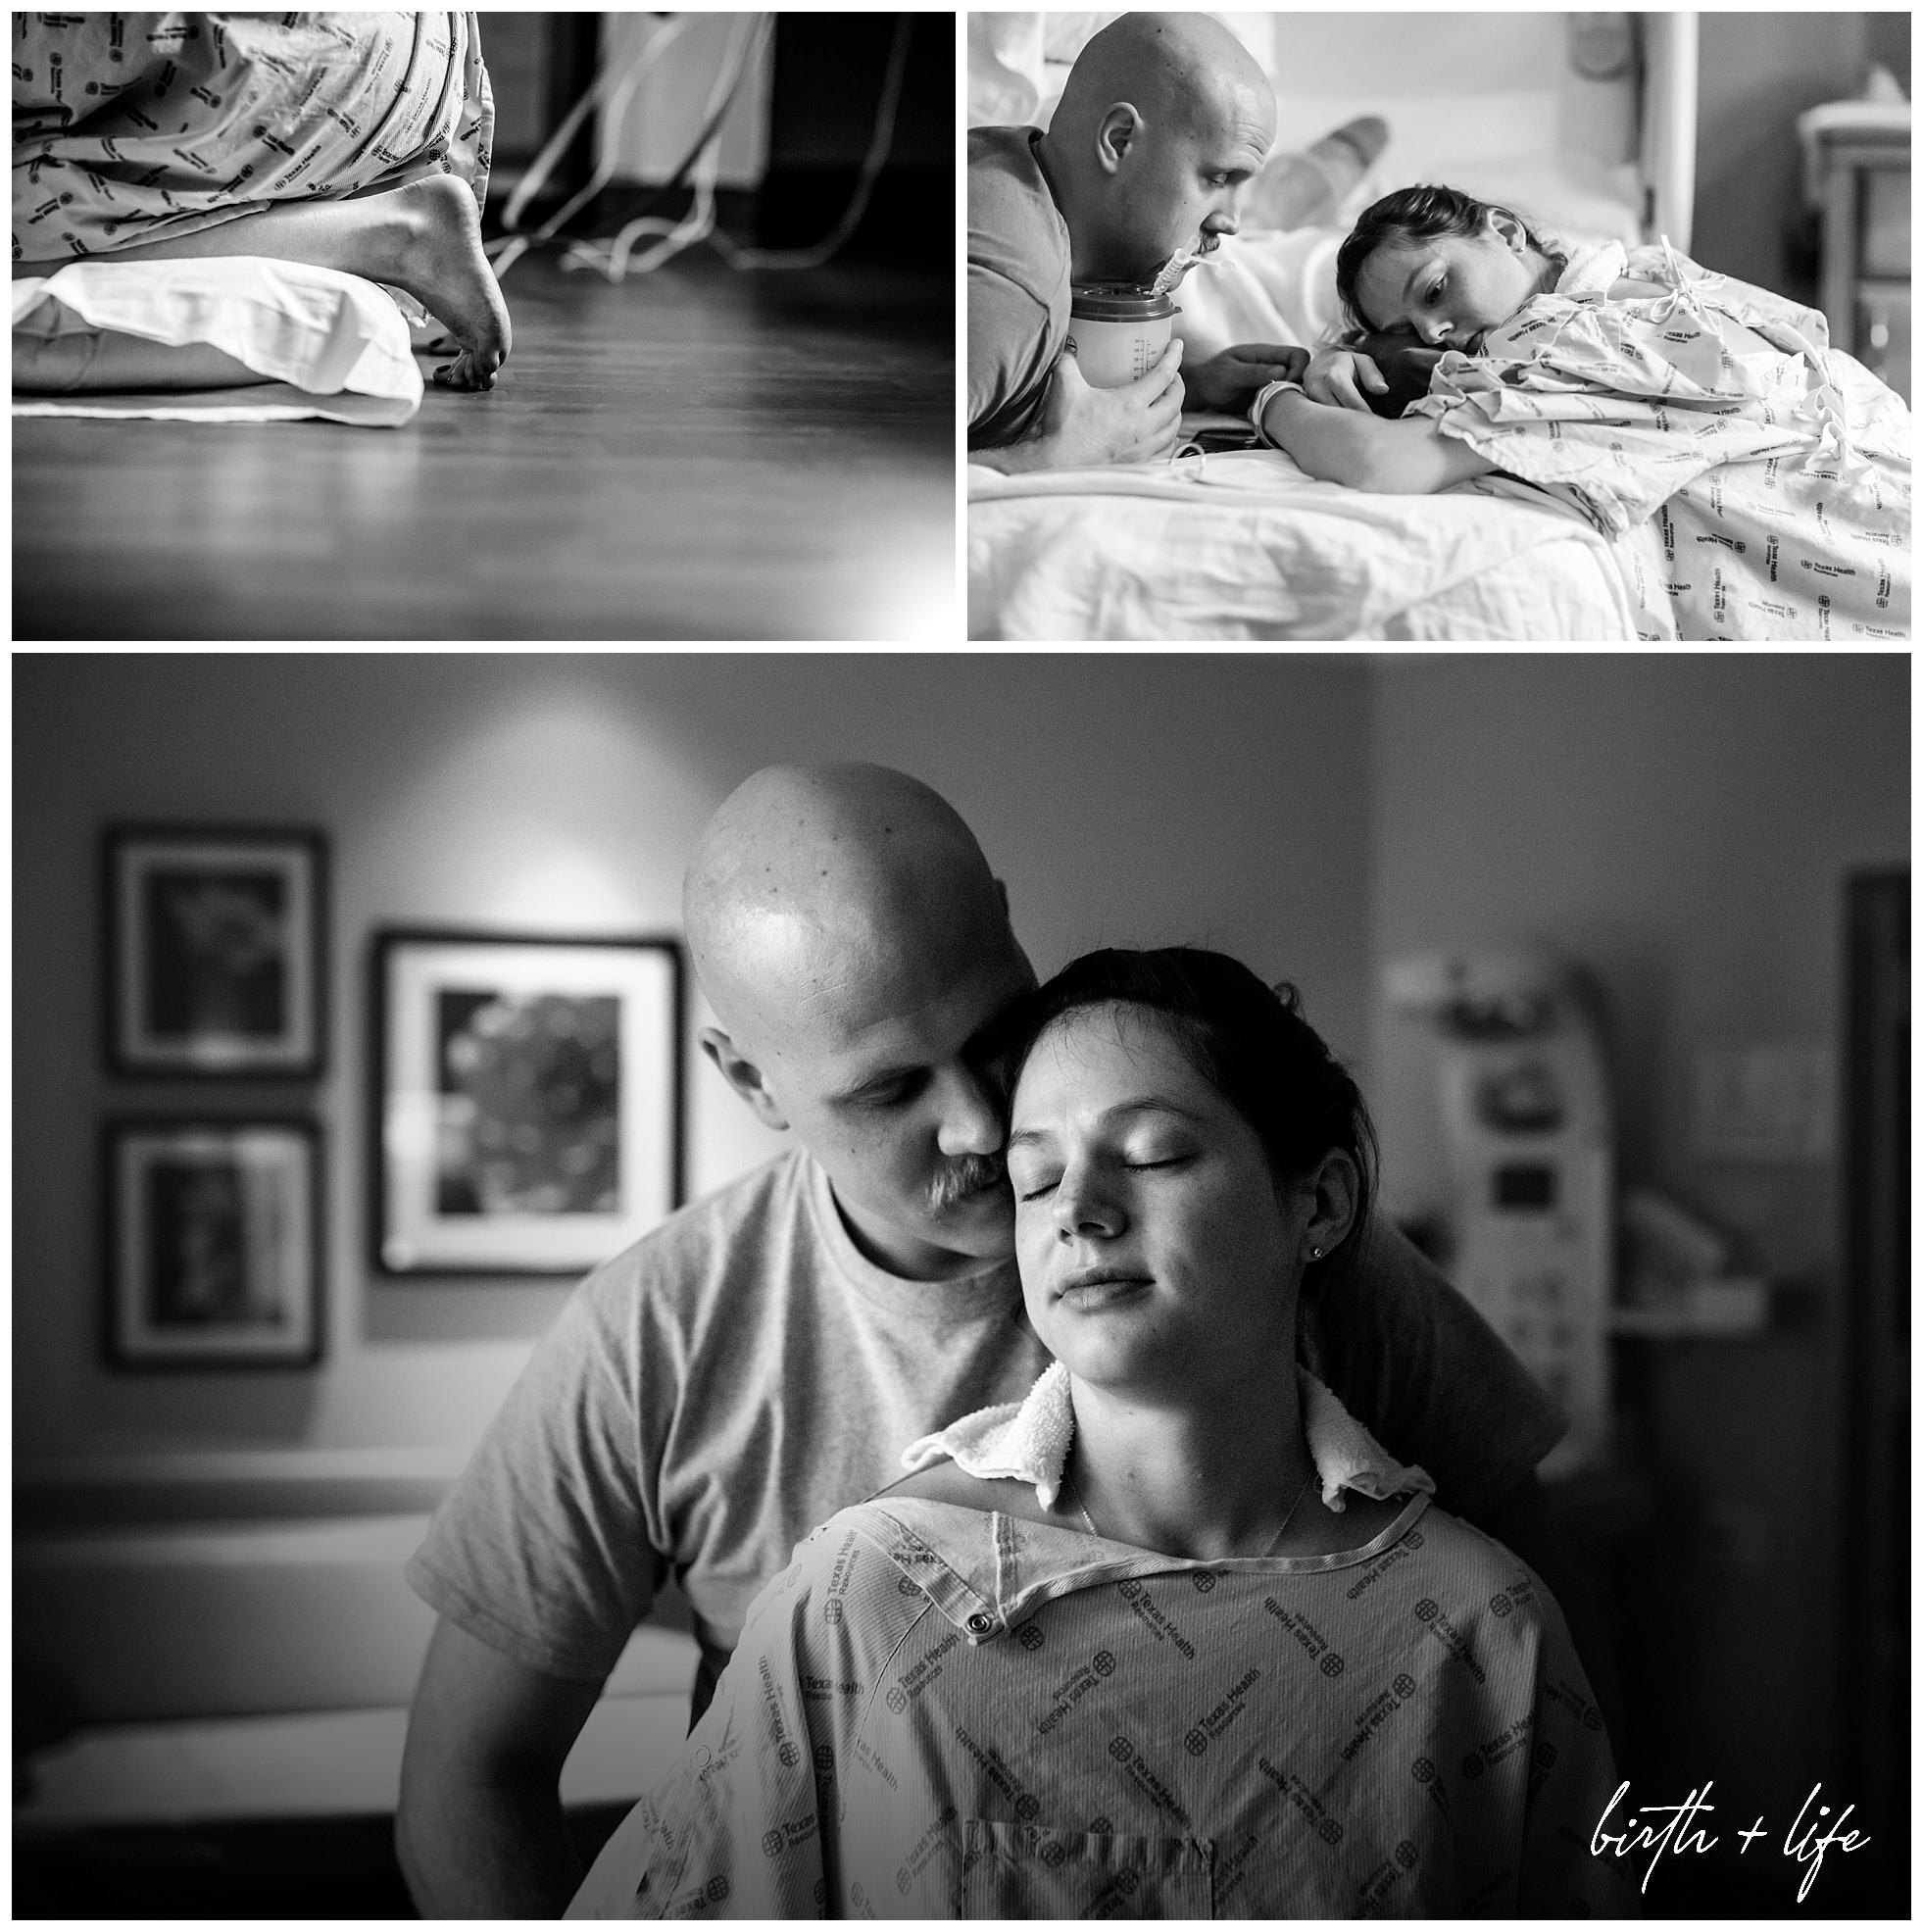 dfw-birth-and-life-photography-family-photojournalism-documentary-birth-storyacclaim-midwives-clark002.jpg